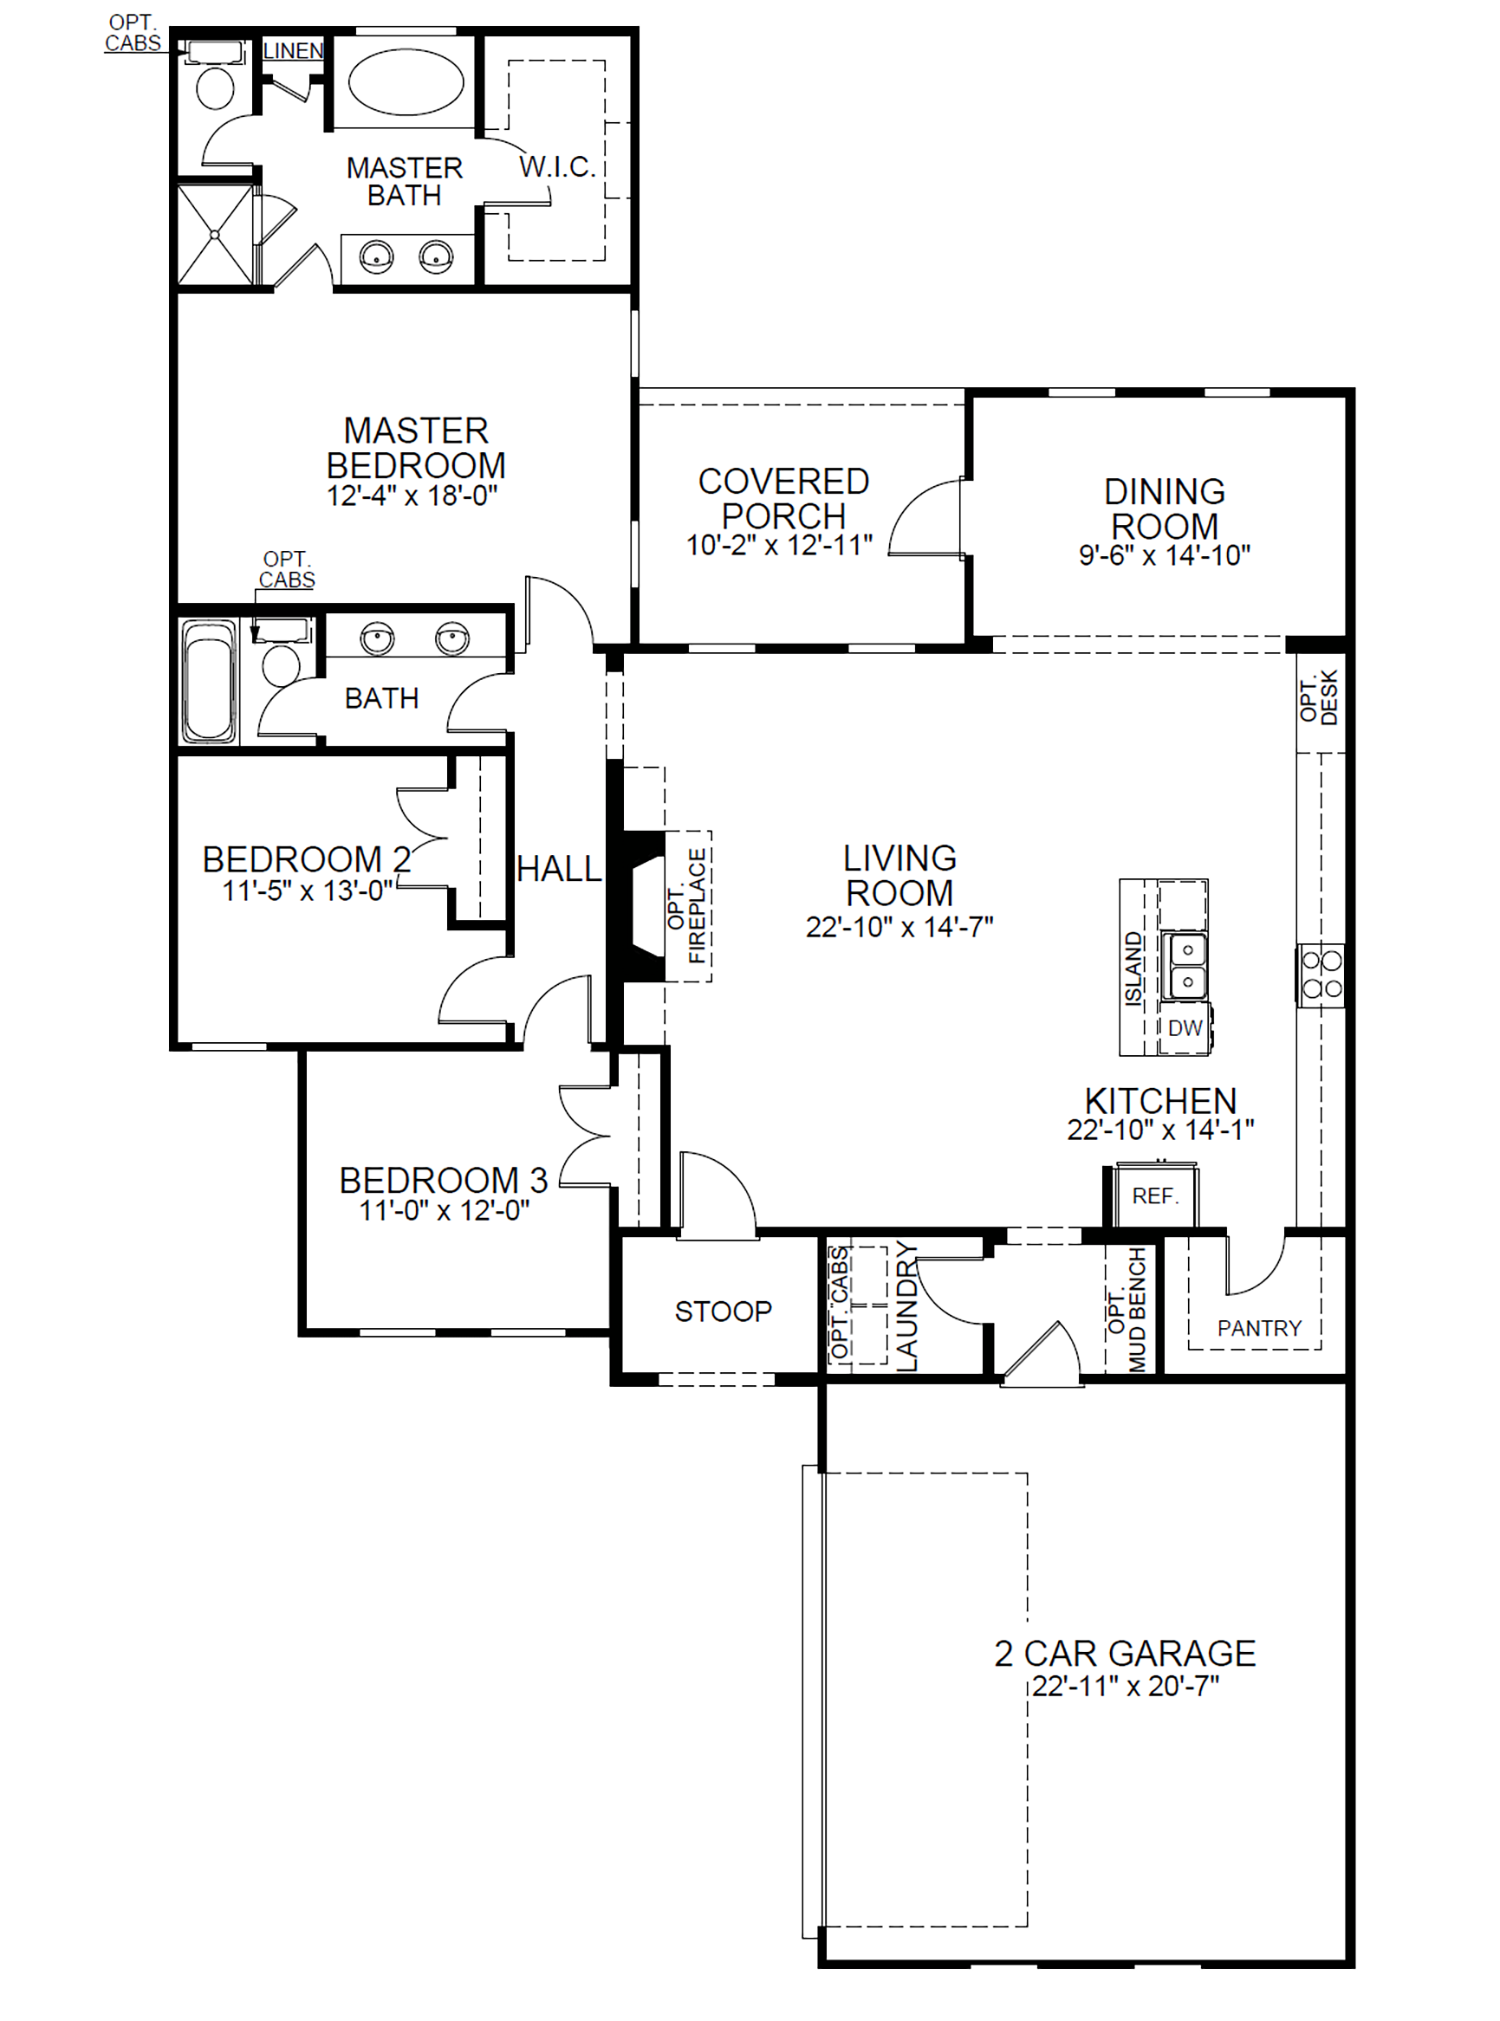 Richland B At Germany Oaks Level Homes Floor Plans House Floor Plans New Homes For Sale